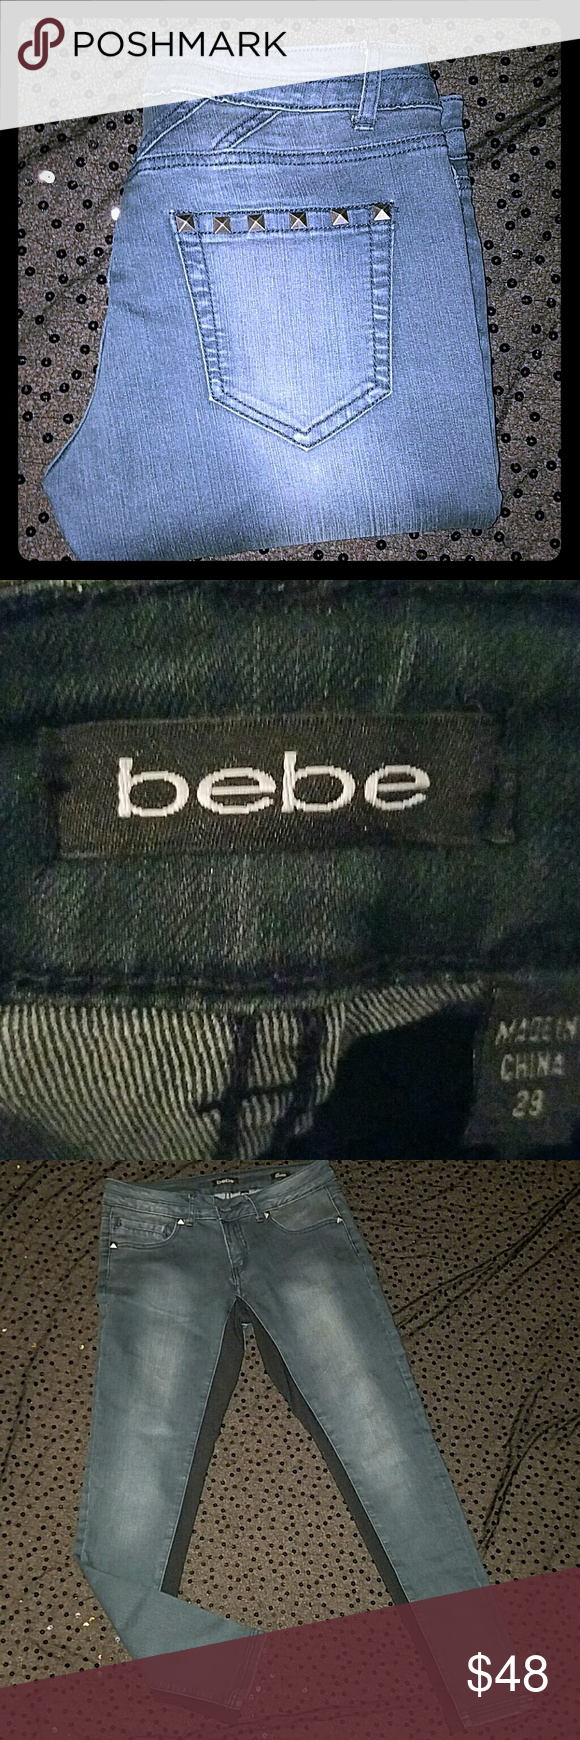 BEBE QUIN size 29 Studded pockets. Stretchy black material down inside legs. Bruiser wash. Rise 9 inseam 29. Skinny stretch ankle. 80% cotton 19% poly1% spandex.LIKE NEW EEUC. bebe Jeans Ankle & Cropped